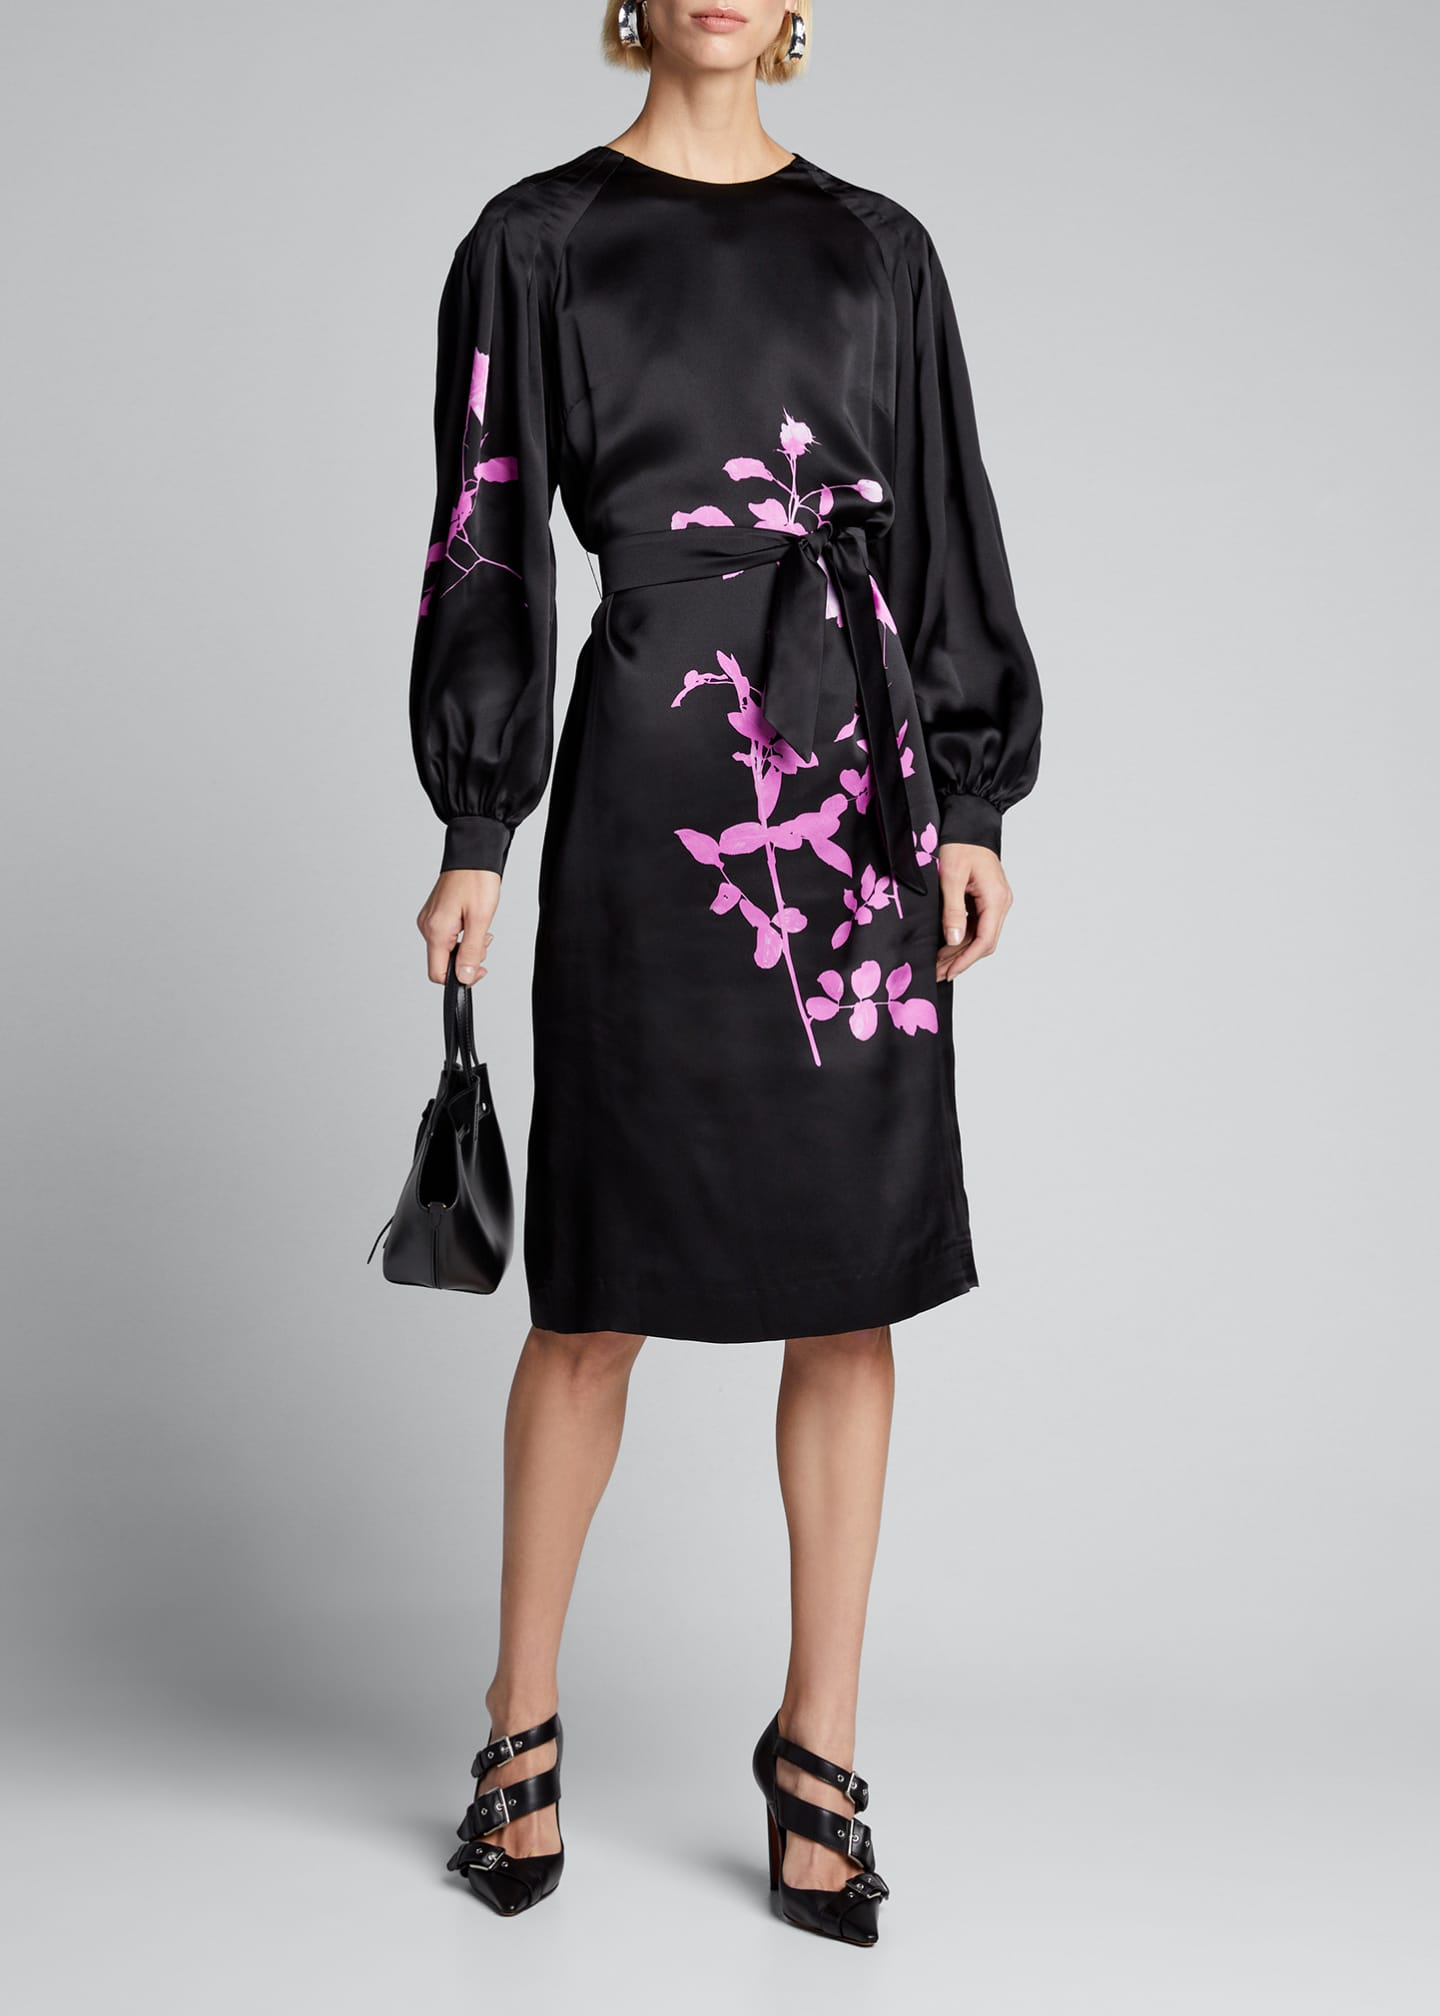 Dries Van Noten Floral-Print Taffeta Balloon-Sleeve Dress